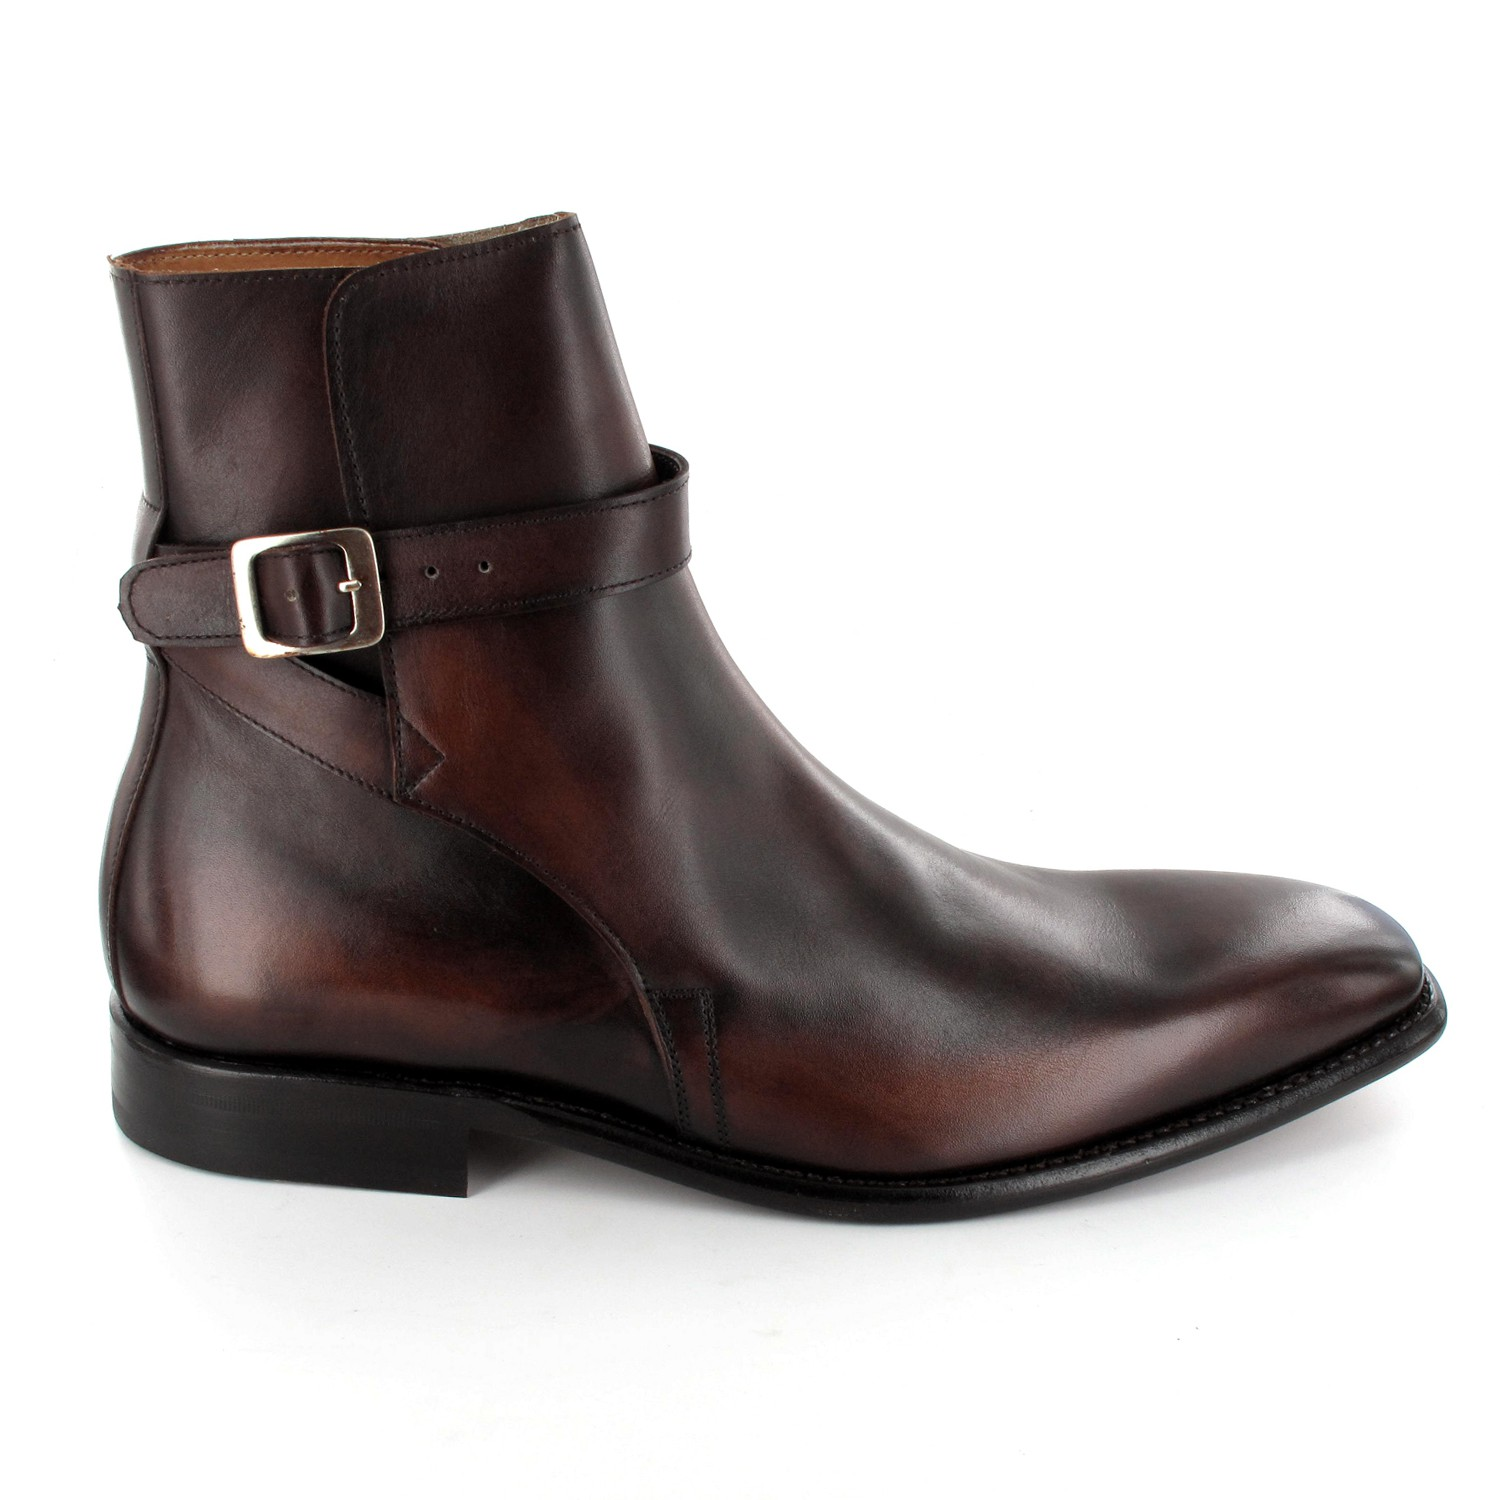 bottines homme - boots homme